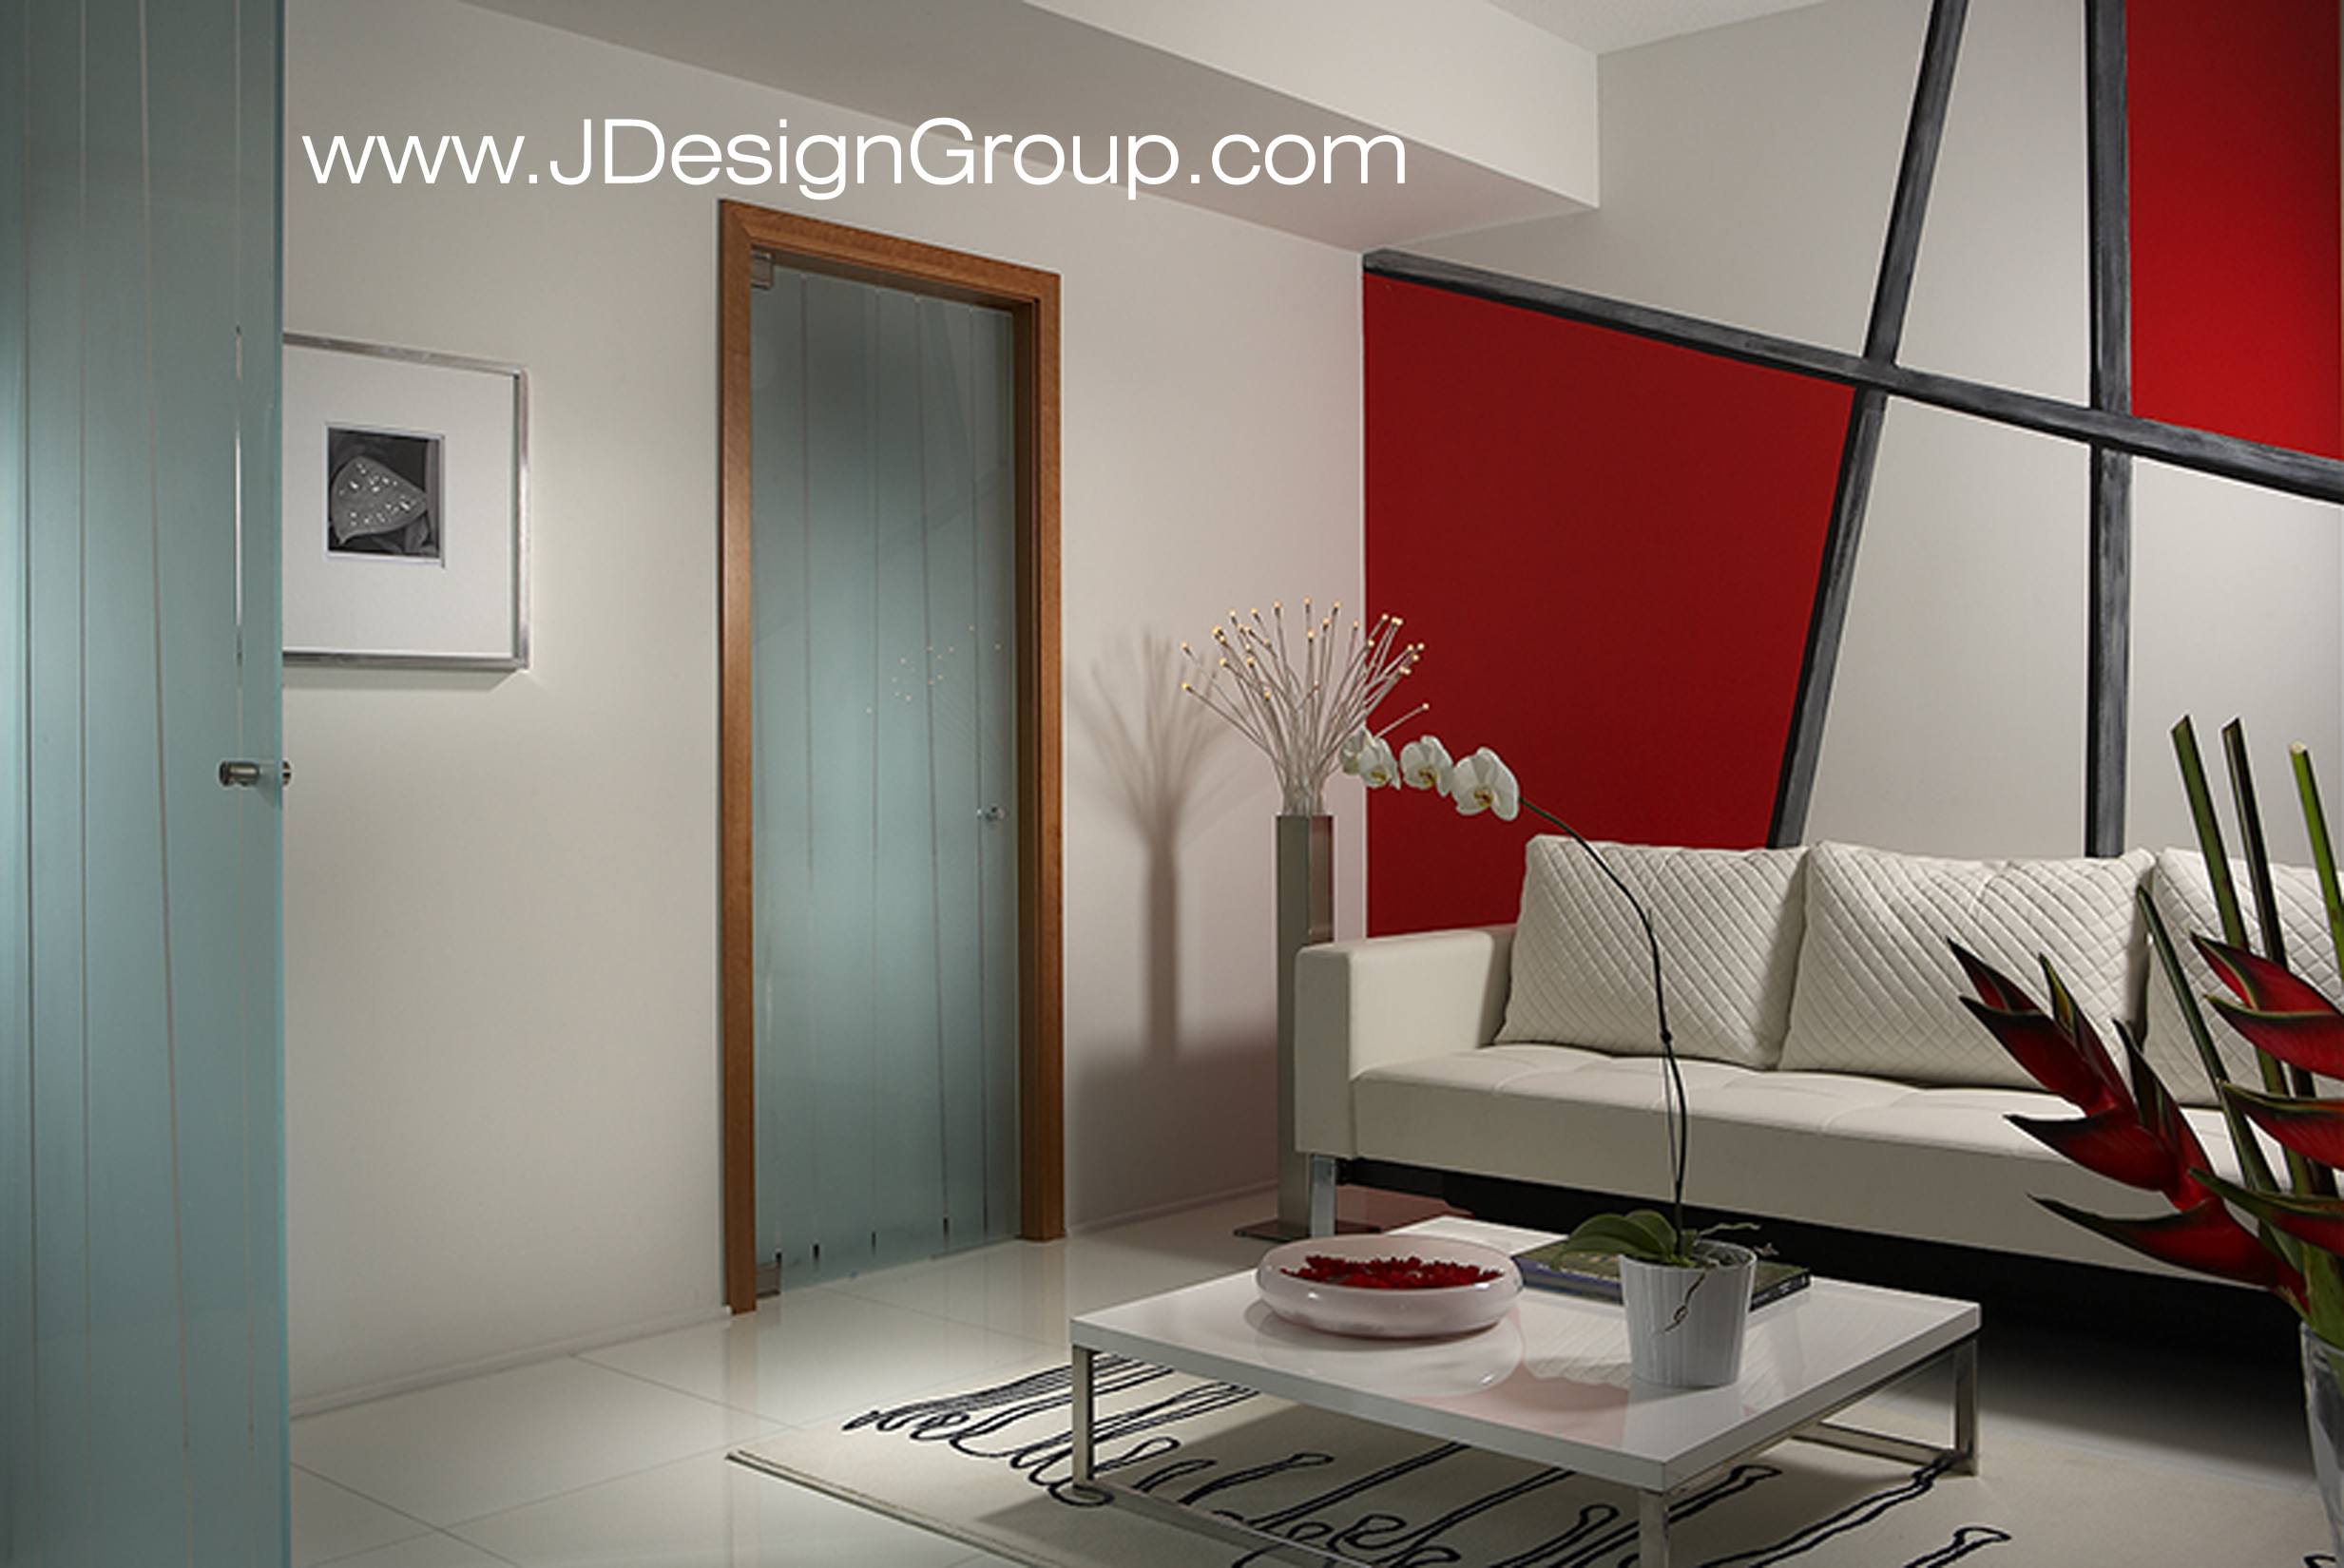 Interior Decorators Miami interior designers miami - furniture design jobs